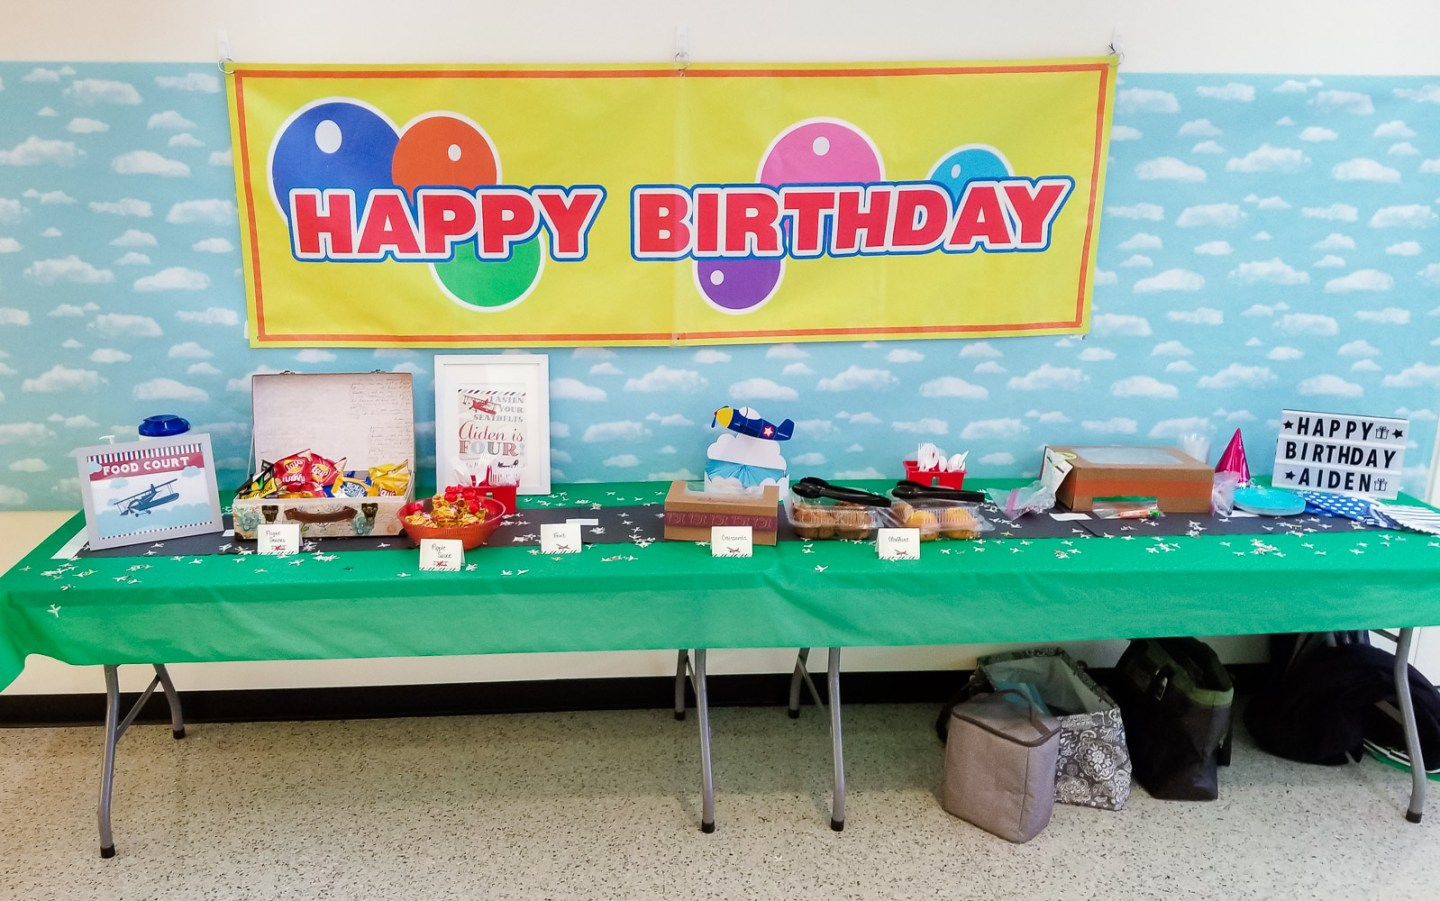 How to Plan a Birthday Party at the Airport for Your Child by popular DC mommy blog, Baby Castan on Board: image of a Happy Birthday banner hanging above two tables covered with green plastic tablecloths and containing muffins, cake, party hats, paper plates, and party favors.